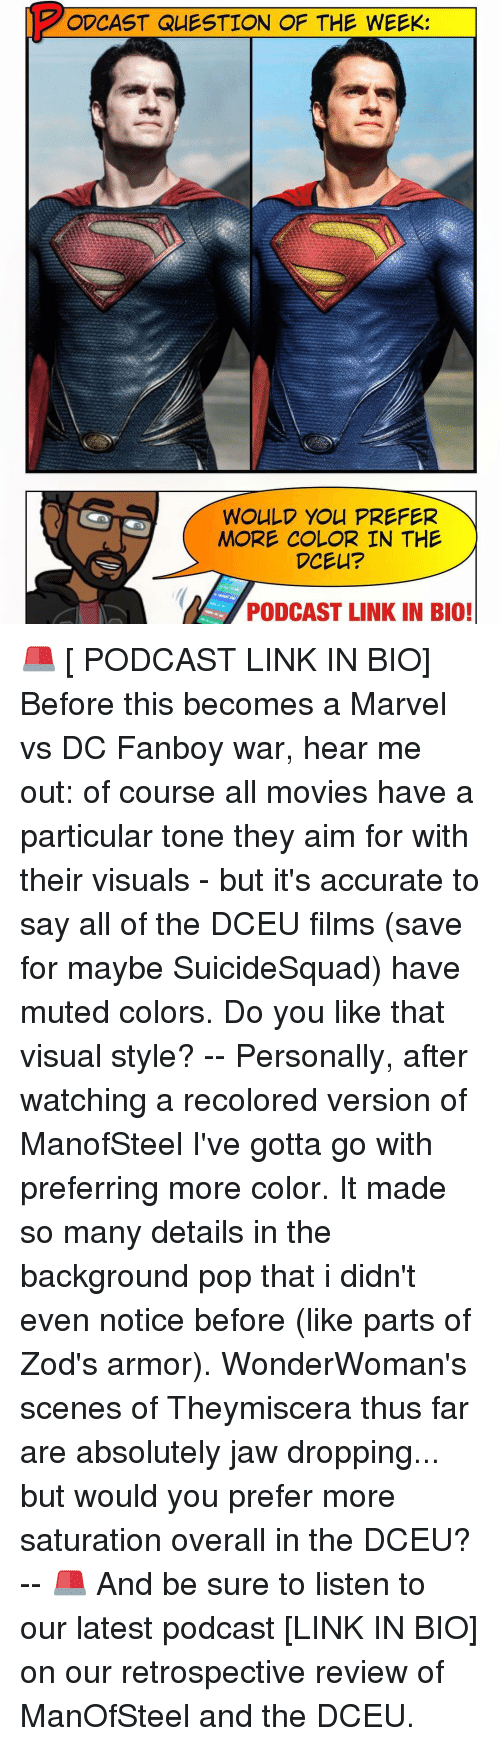 Memes, Pop, and Mute: O CAST QUESTION OF THE WEEK:  WOULD YOU PREFER  MORE COLOR IN THE  DCEU?  PODCAST LINK IN BIO! 🚨 [ PODCAST LINK IN BIO] Before this becomes a Marvel vs DC Fanboy war, hear me out: of course all movies have a particular tone they aim for with their visuals - but it's accurate to say all of the DCEU films (save for maybe SuicideSquad) have muted colors. Do you like that visual style? -- Personally, after watching a recolored version of ManofSteel I've gotta go with preferring more color. It made so many details in the background pop that i didn't even notice before (like parts of Zod's armor). WonderWoman's scenes of Theymiscera thus far are absolutely jaw dropping... but would you prefer more saturation overall in the DCEU? -- 🚨 And be sure to listen to our latest podcast [LINK IN BIO] on our retrospective review of ManOfSteel and the DCEU.